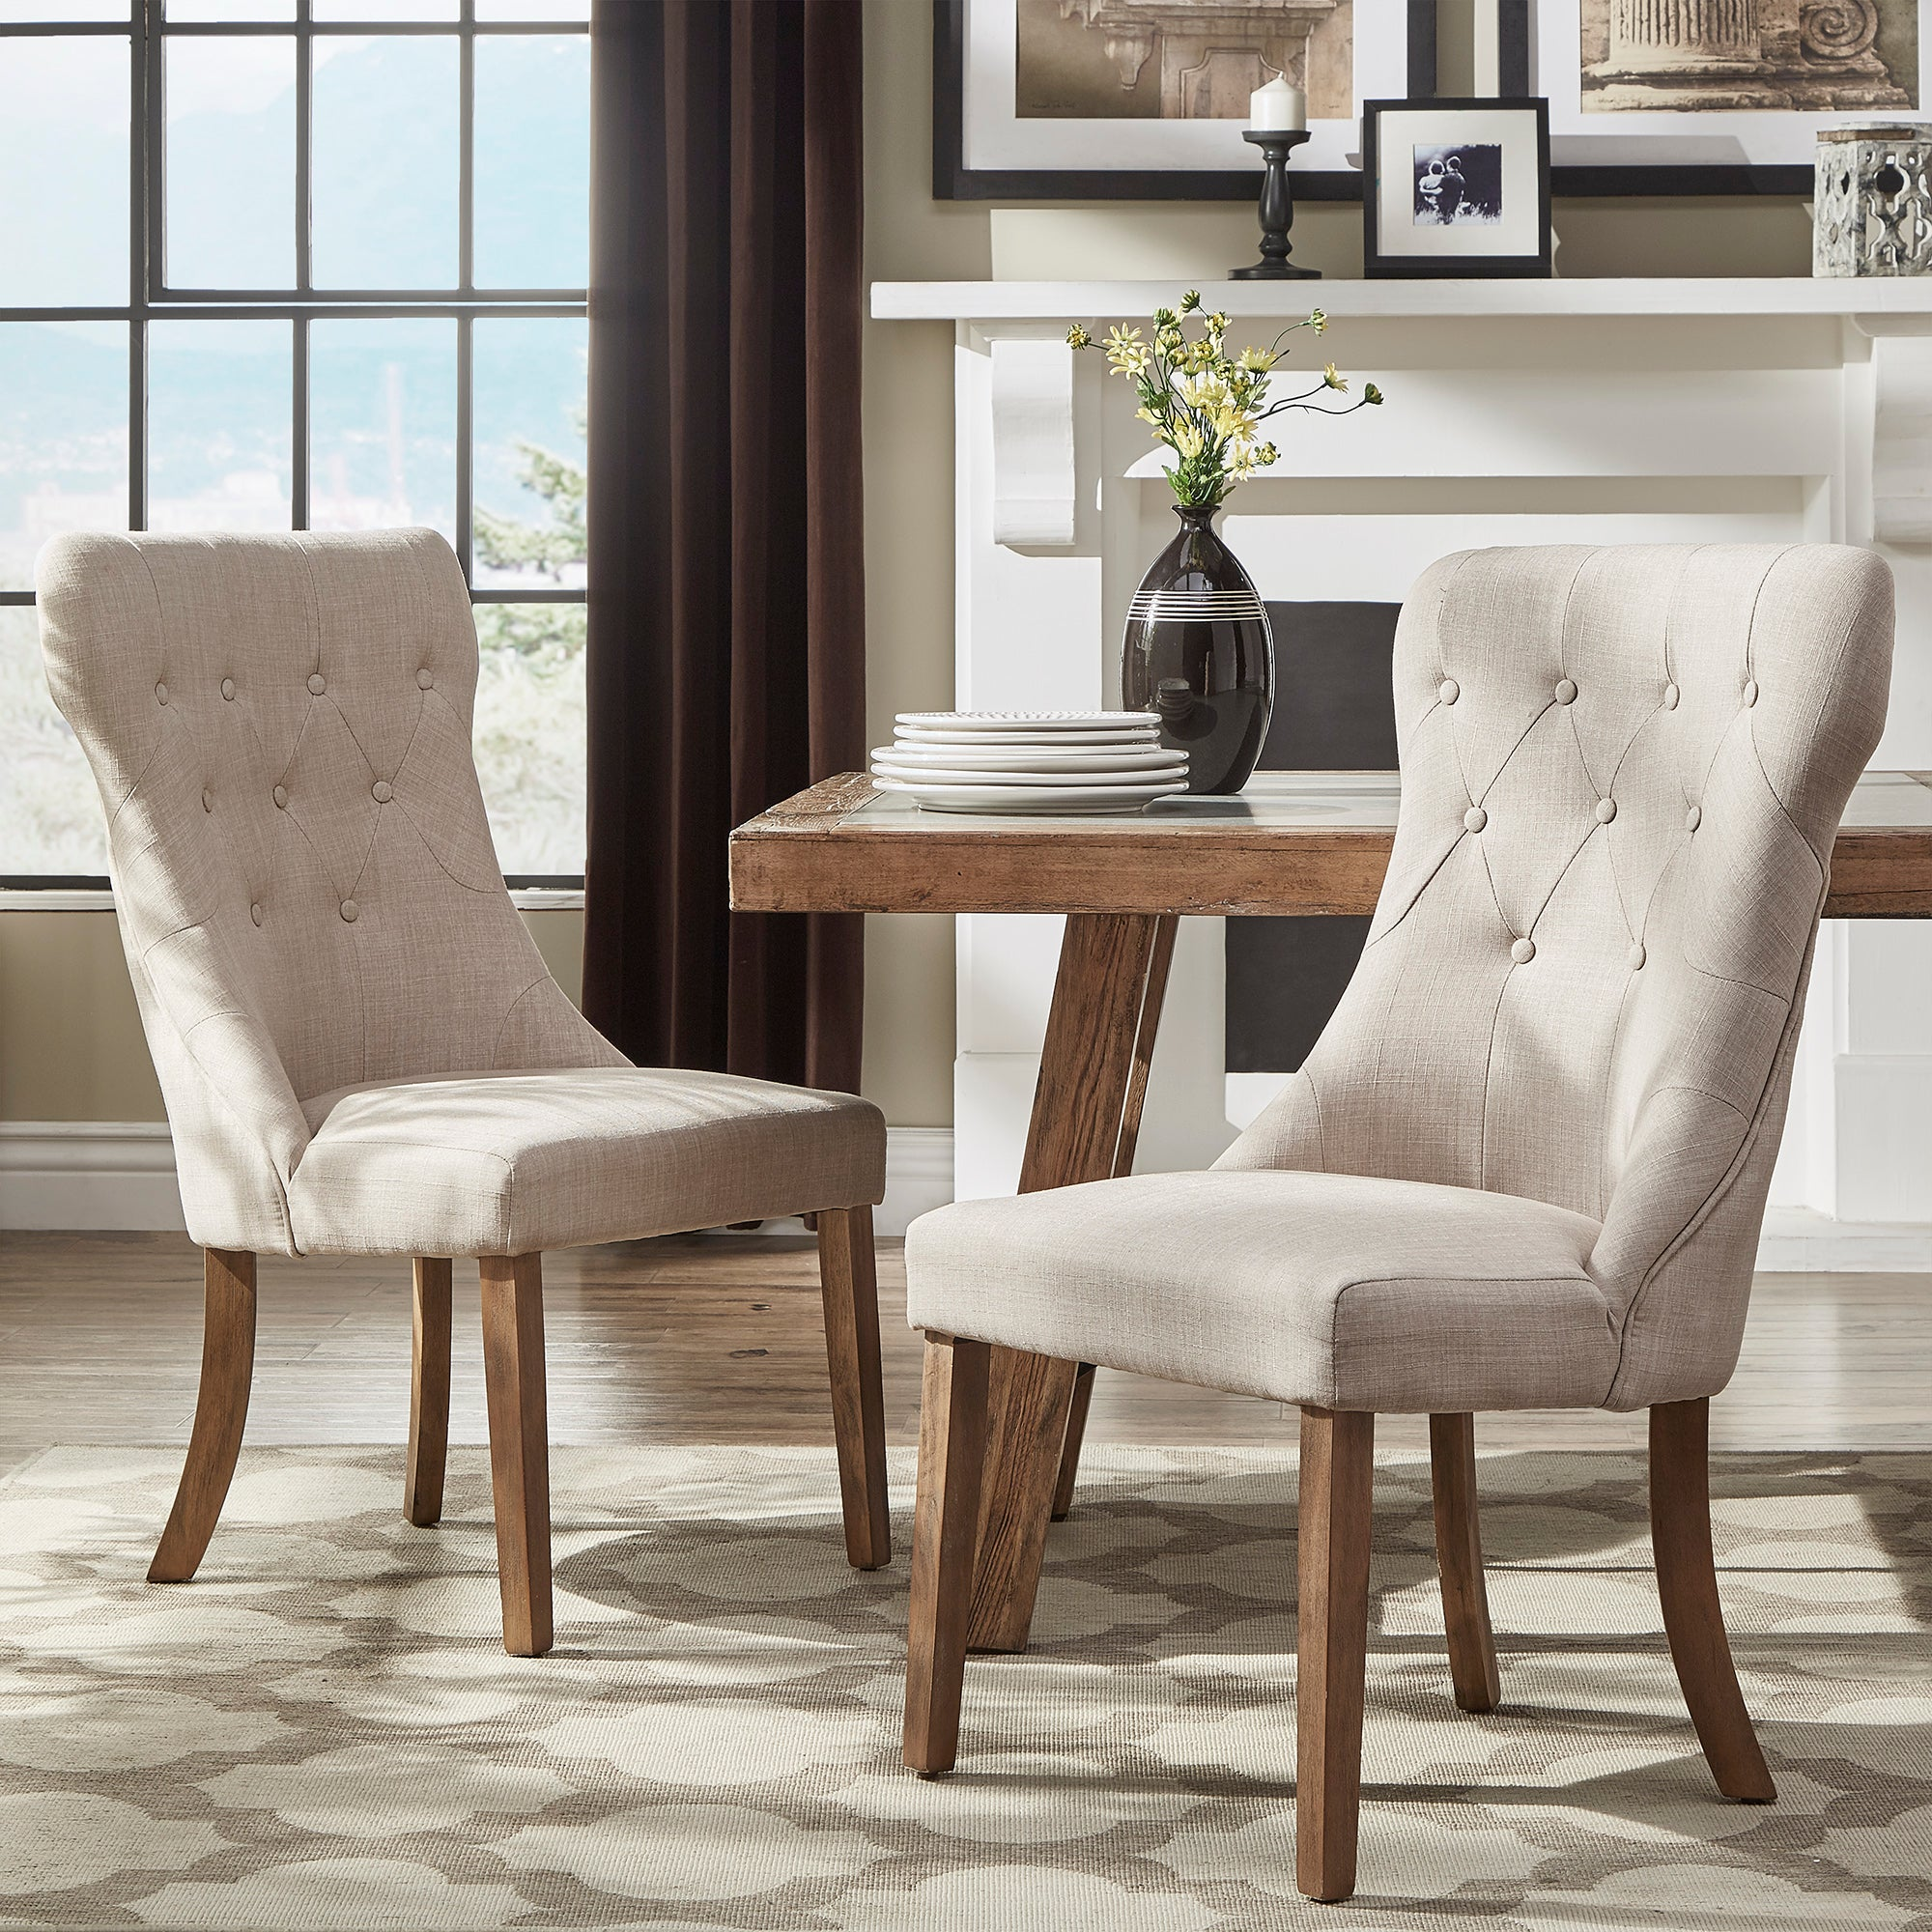 Beige Linen Button Tufted Dining Chair (Set of 2)